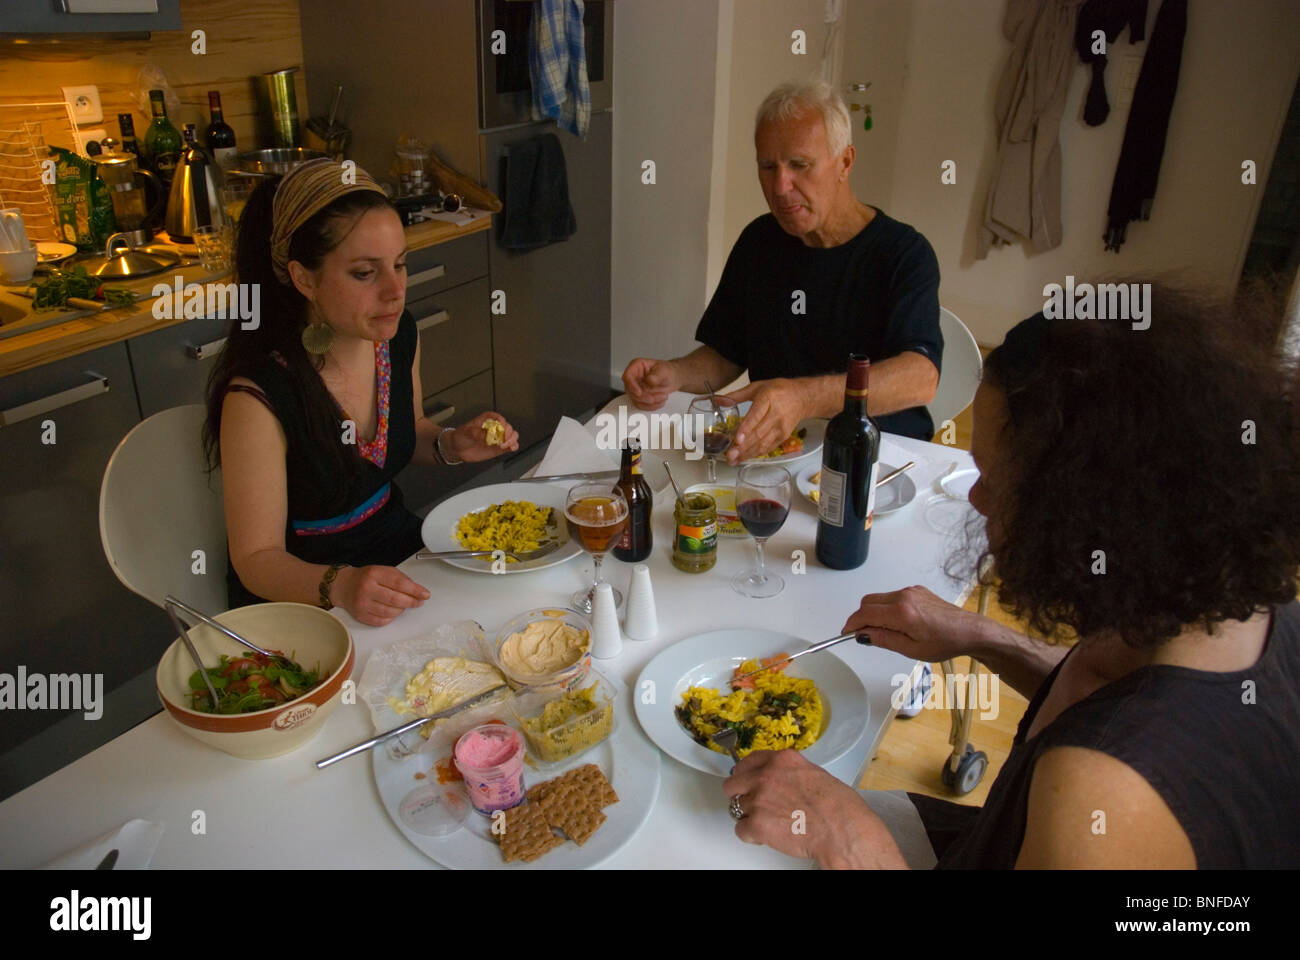 Australian family having a meal in an apartment in Le Marais district Paris France Europe - Stock Image